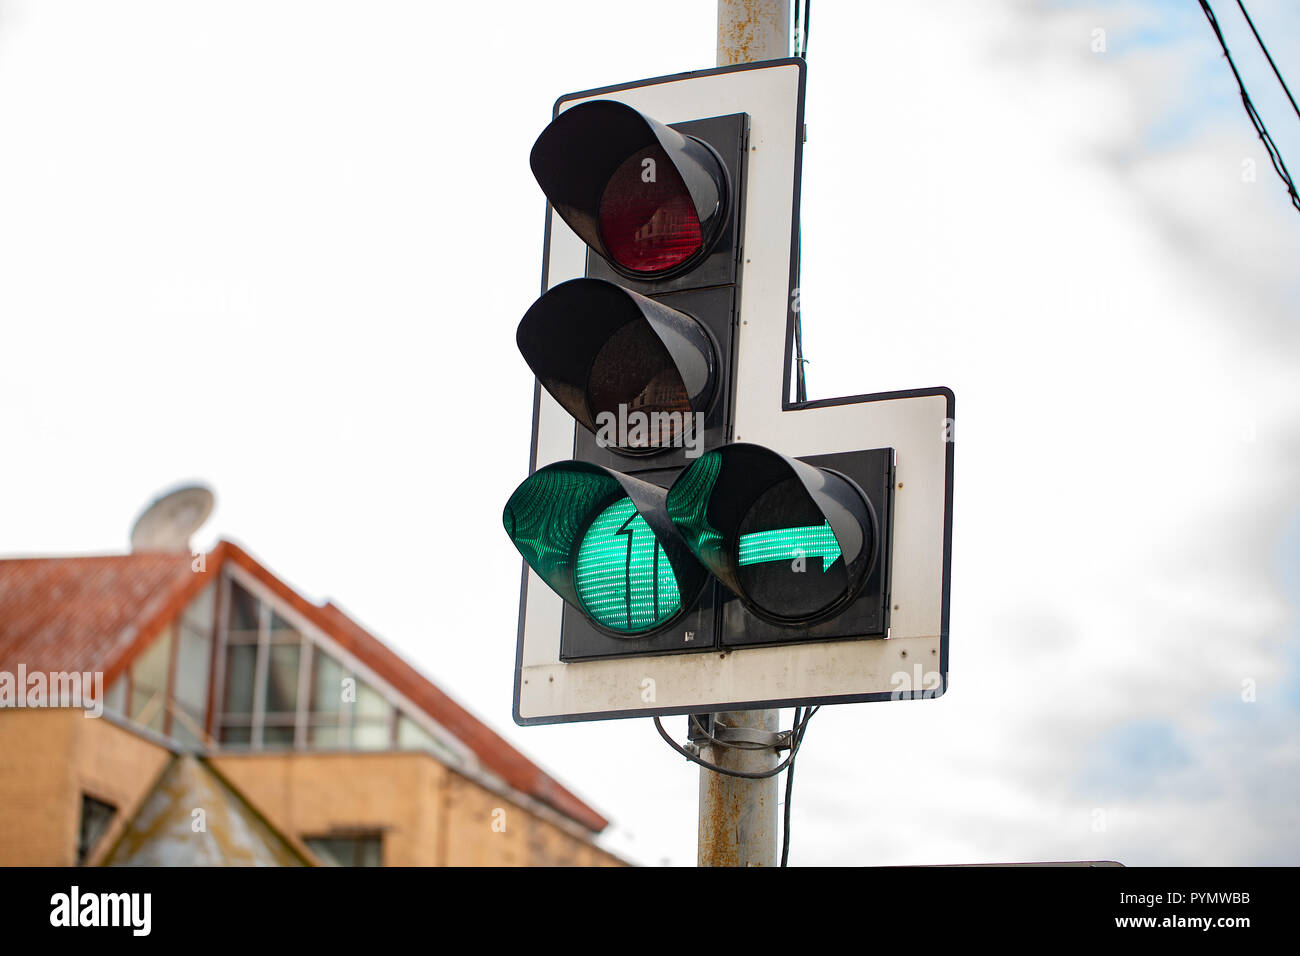 Traffic lights with right arrow. traffic light with green - Stock Image